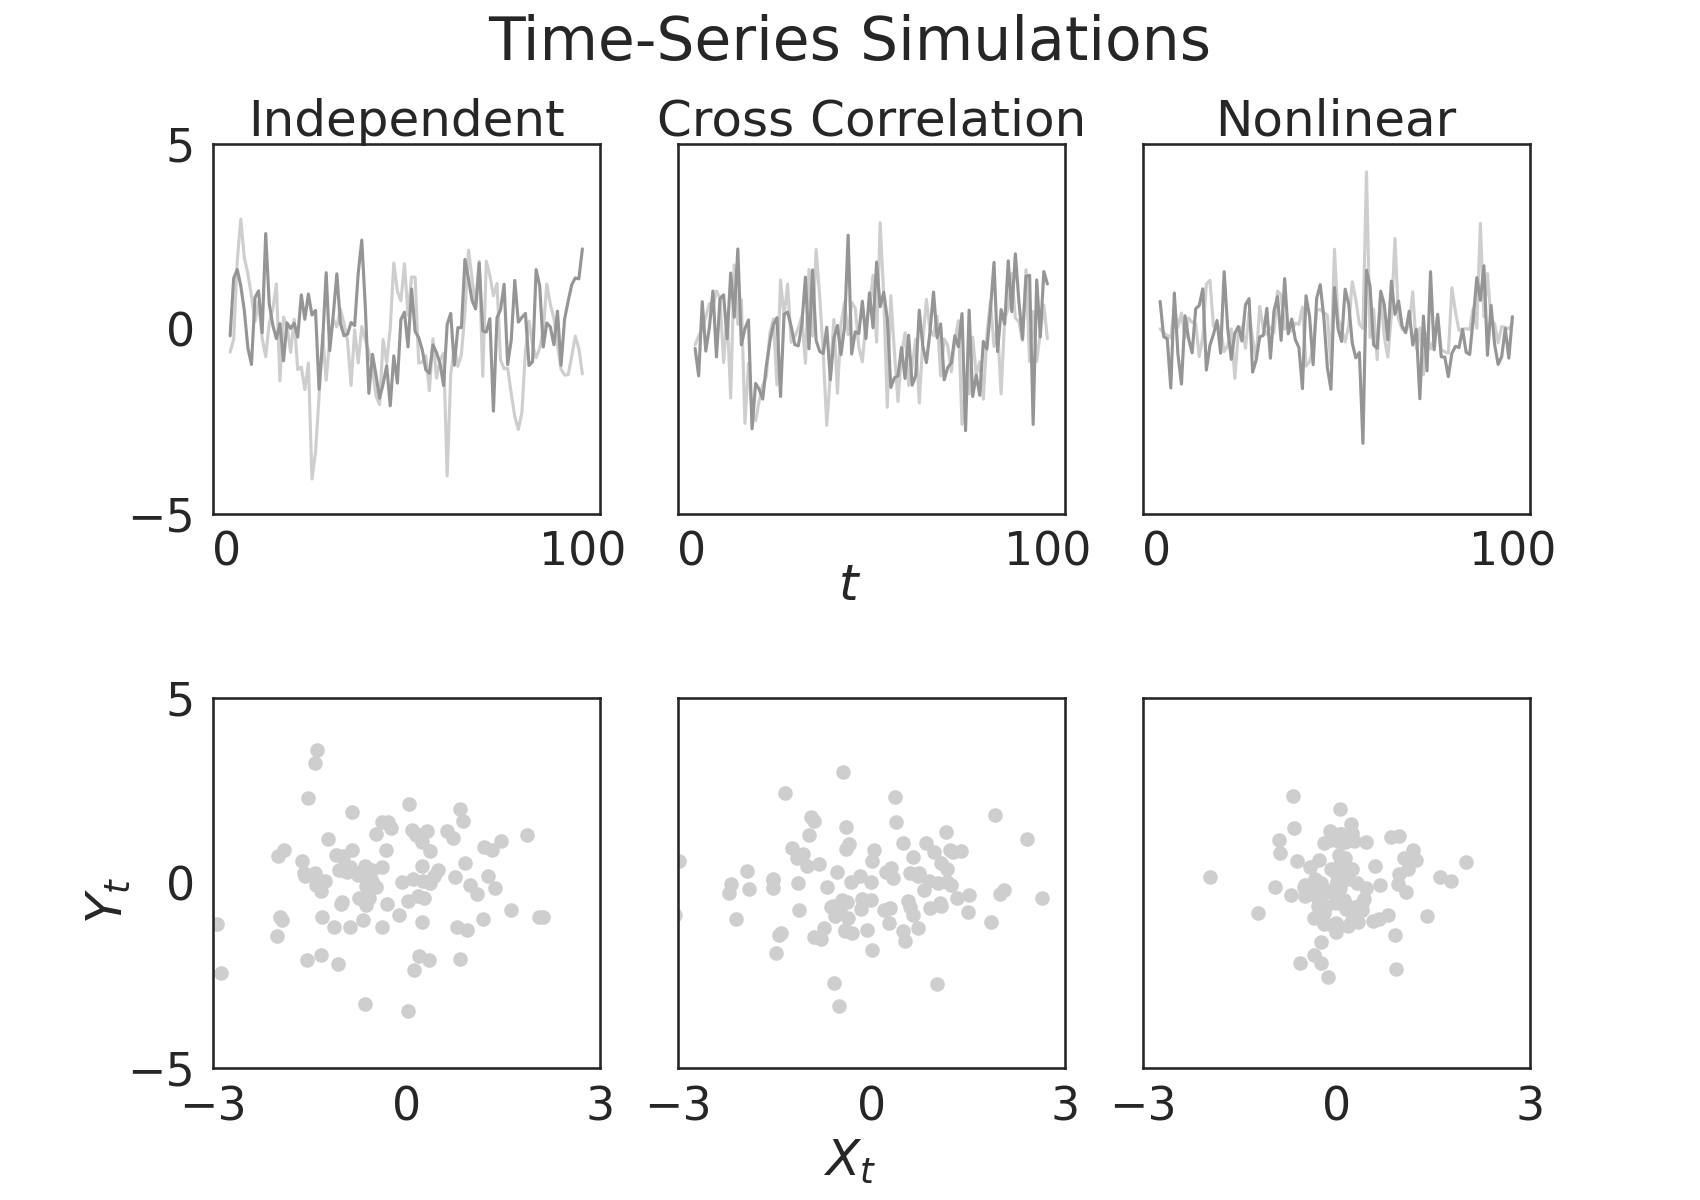 Time-Series Simulations, Independent, Cross Correlation, Nonlinear